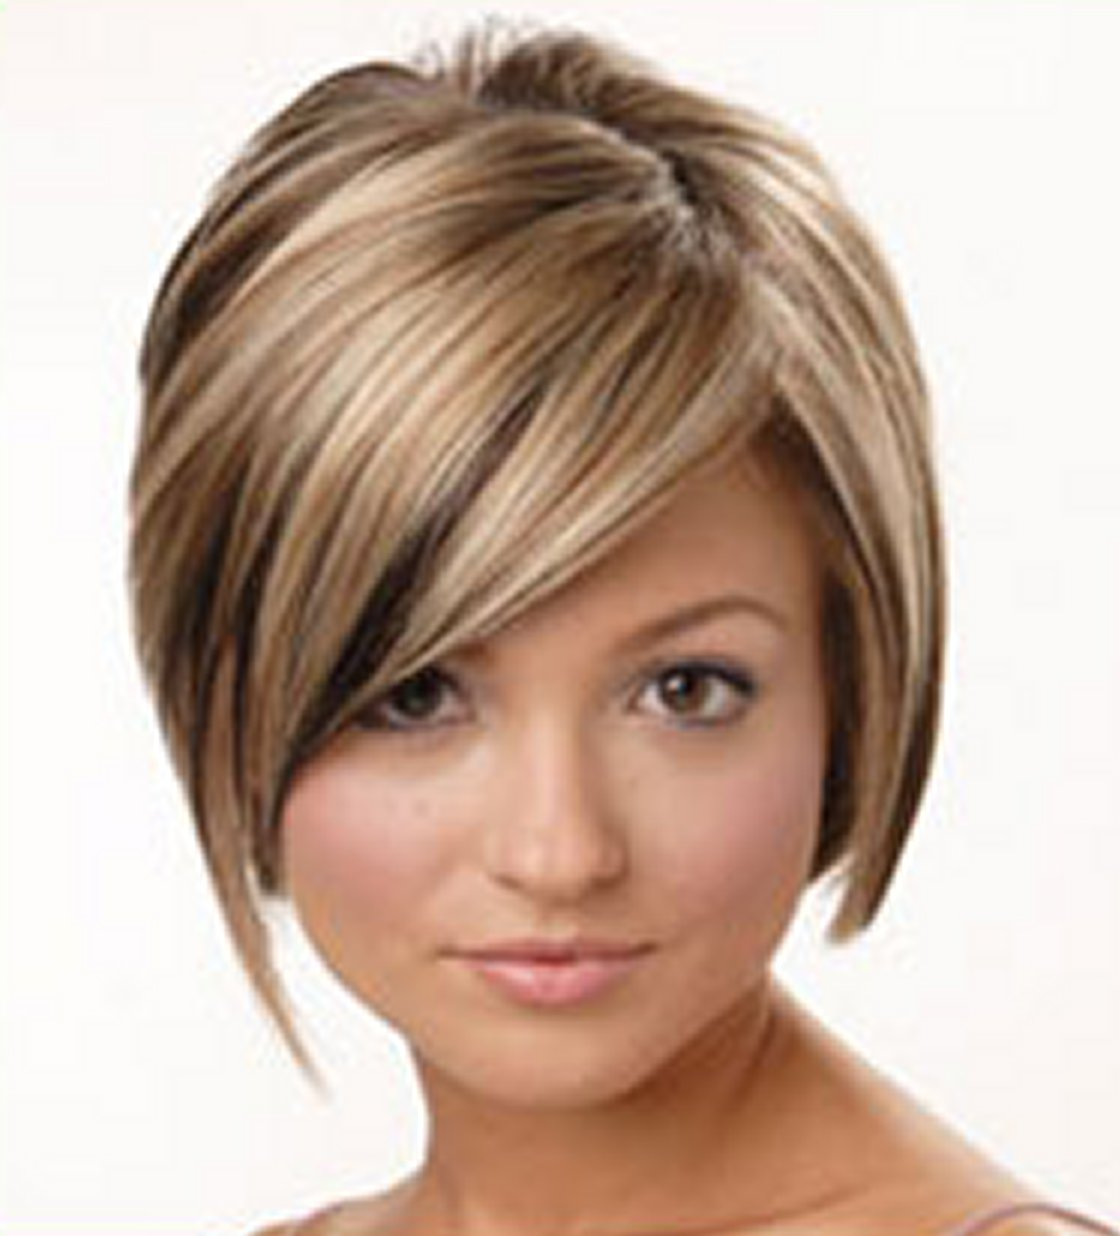 Hairstyles For Girls With Short Hair ~ Tops 10 Hairstyle